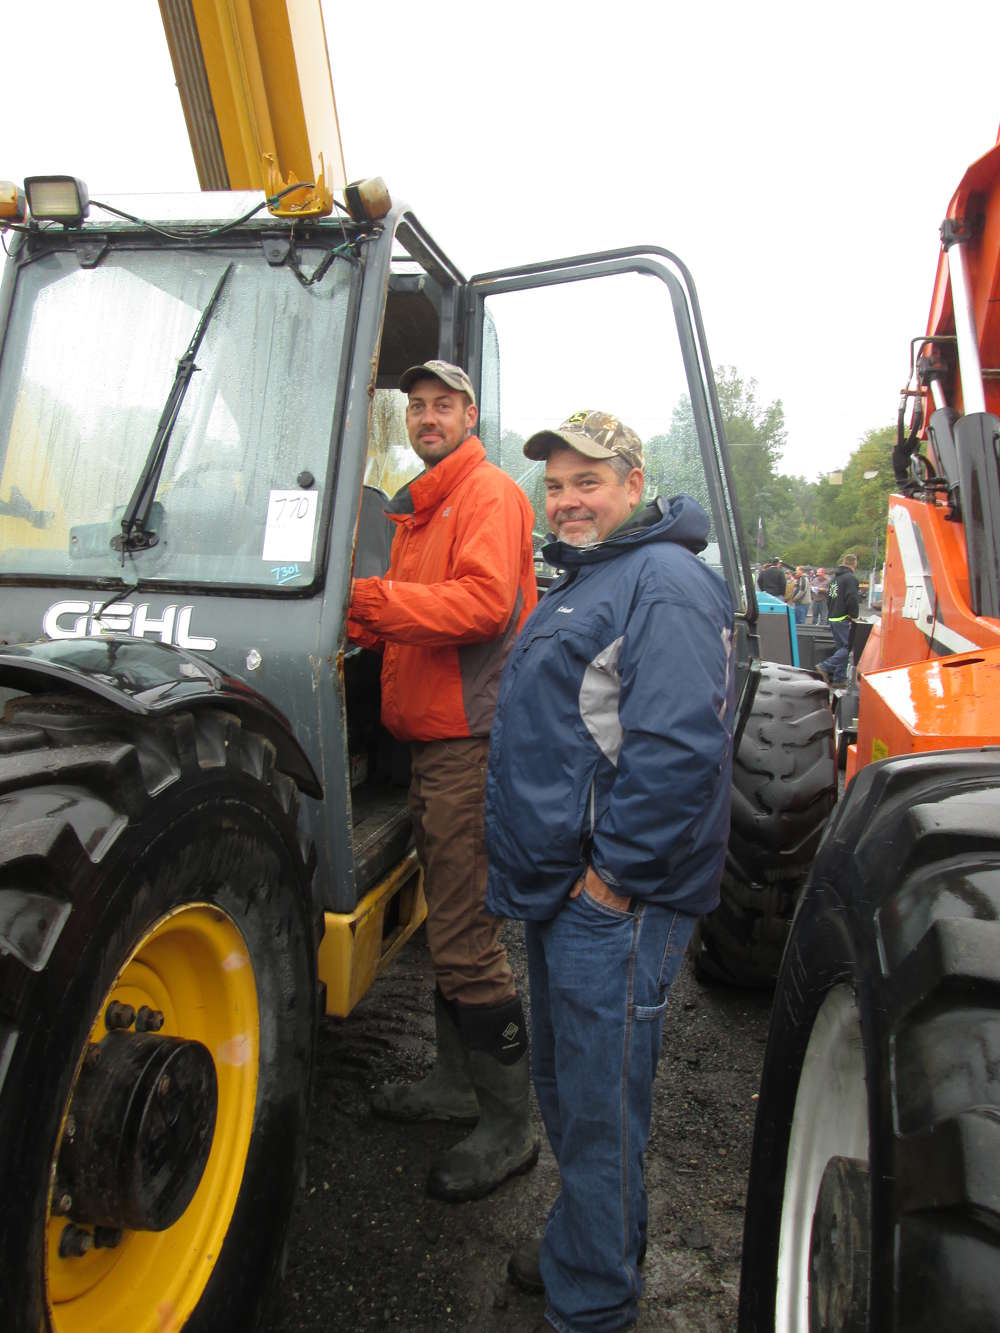 Steve Carroll (R) and his cousin Marc Astrella of Carroll Custom Contracting, West Brookfield, Mass., check out a Gehl telehandler/boom truck.